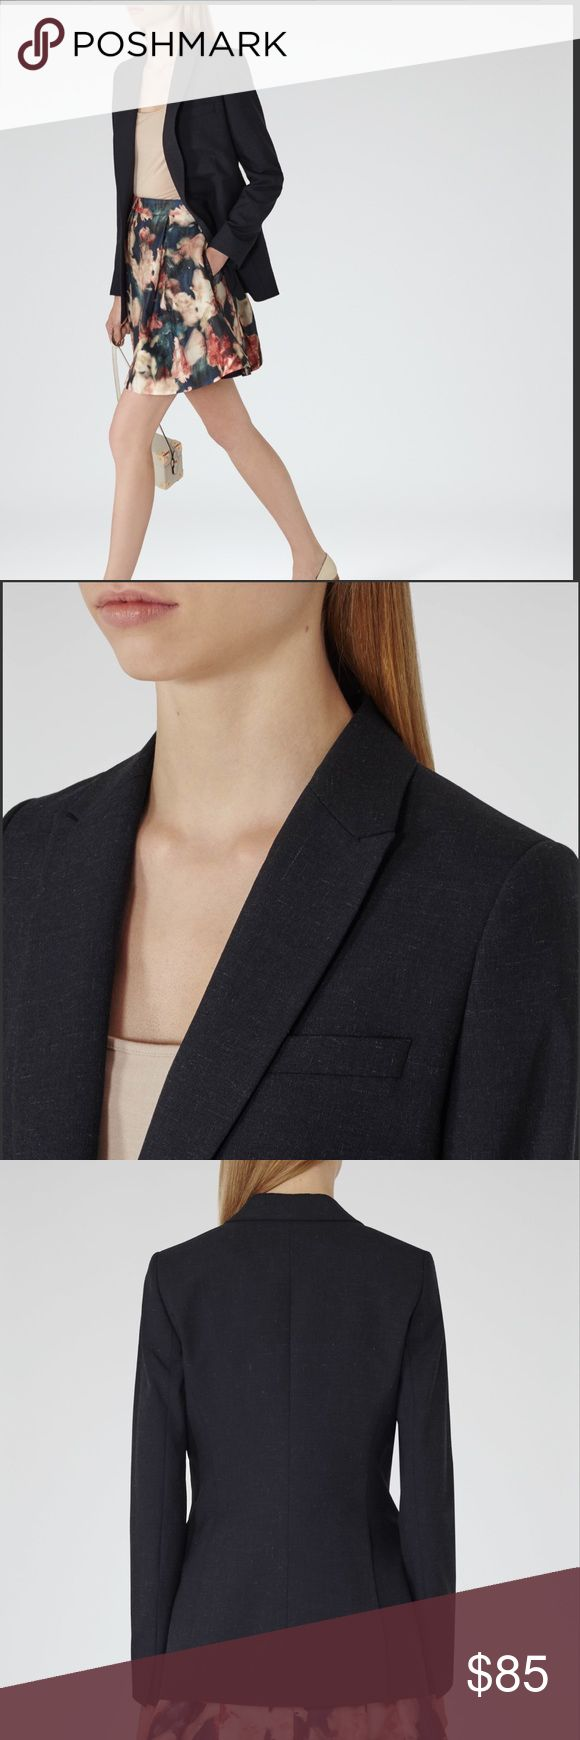 """Reiss Bellemont Boyfriend Blazer Sz: 0 Gorgeous Reiss Bellemont Boyfriend blazer in navy with white specks throughout. Brand new without tags. Unworn- only imperfection is the seem behind the right arm has come undone- very easily fixed at seamstress. Gorgeous structured, yet Boyfriend style long relaxed fit silhouette. Chest pocket, single button closure. Size 0- ( lay flat measures) 27""""in length, 15.5""""in pit to pit with button closed. Questions are welcome! Reiss Jackets & Coats Blazers"""